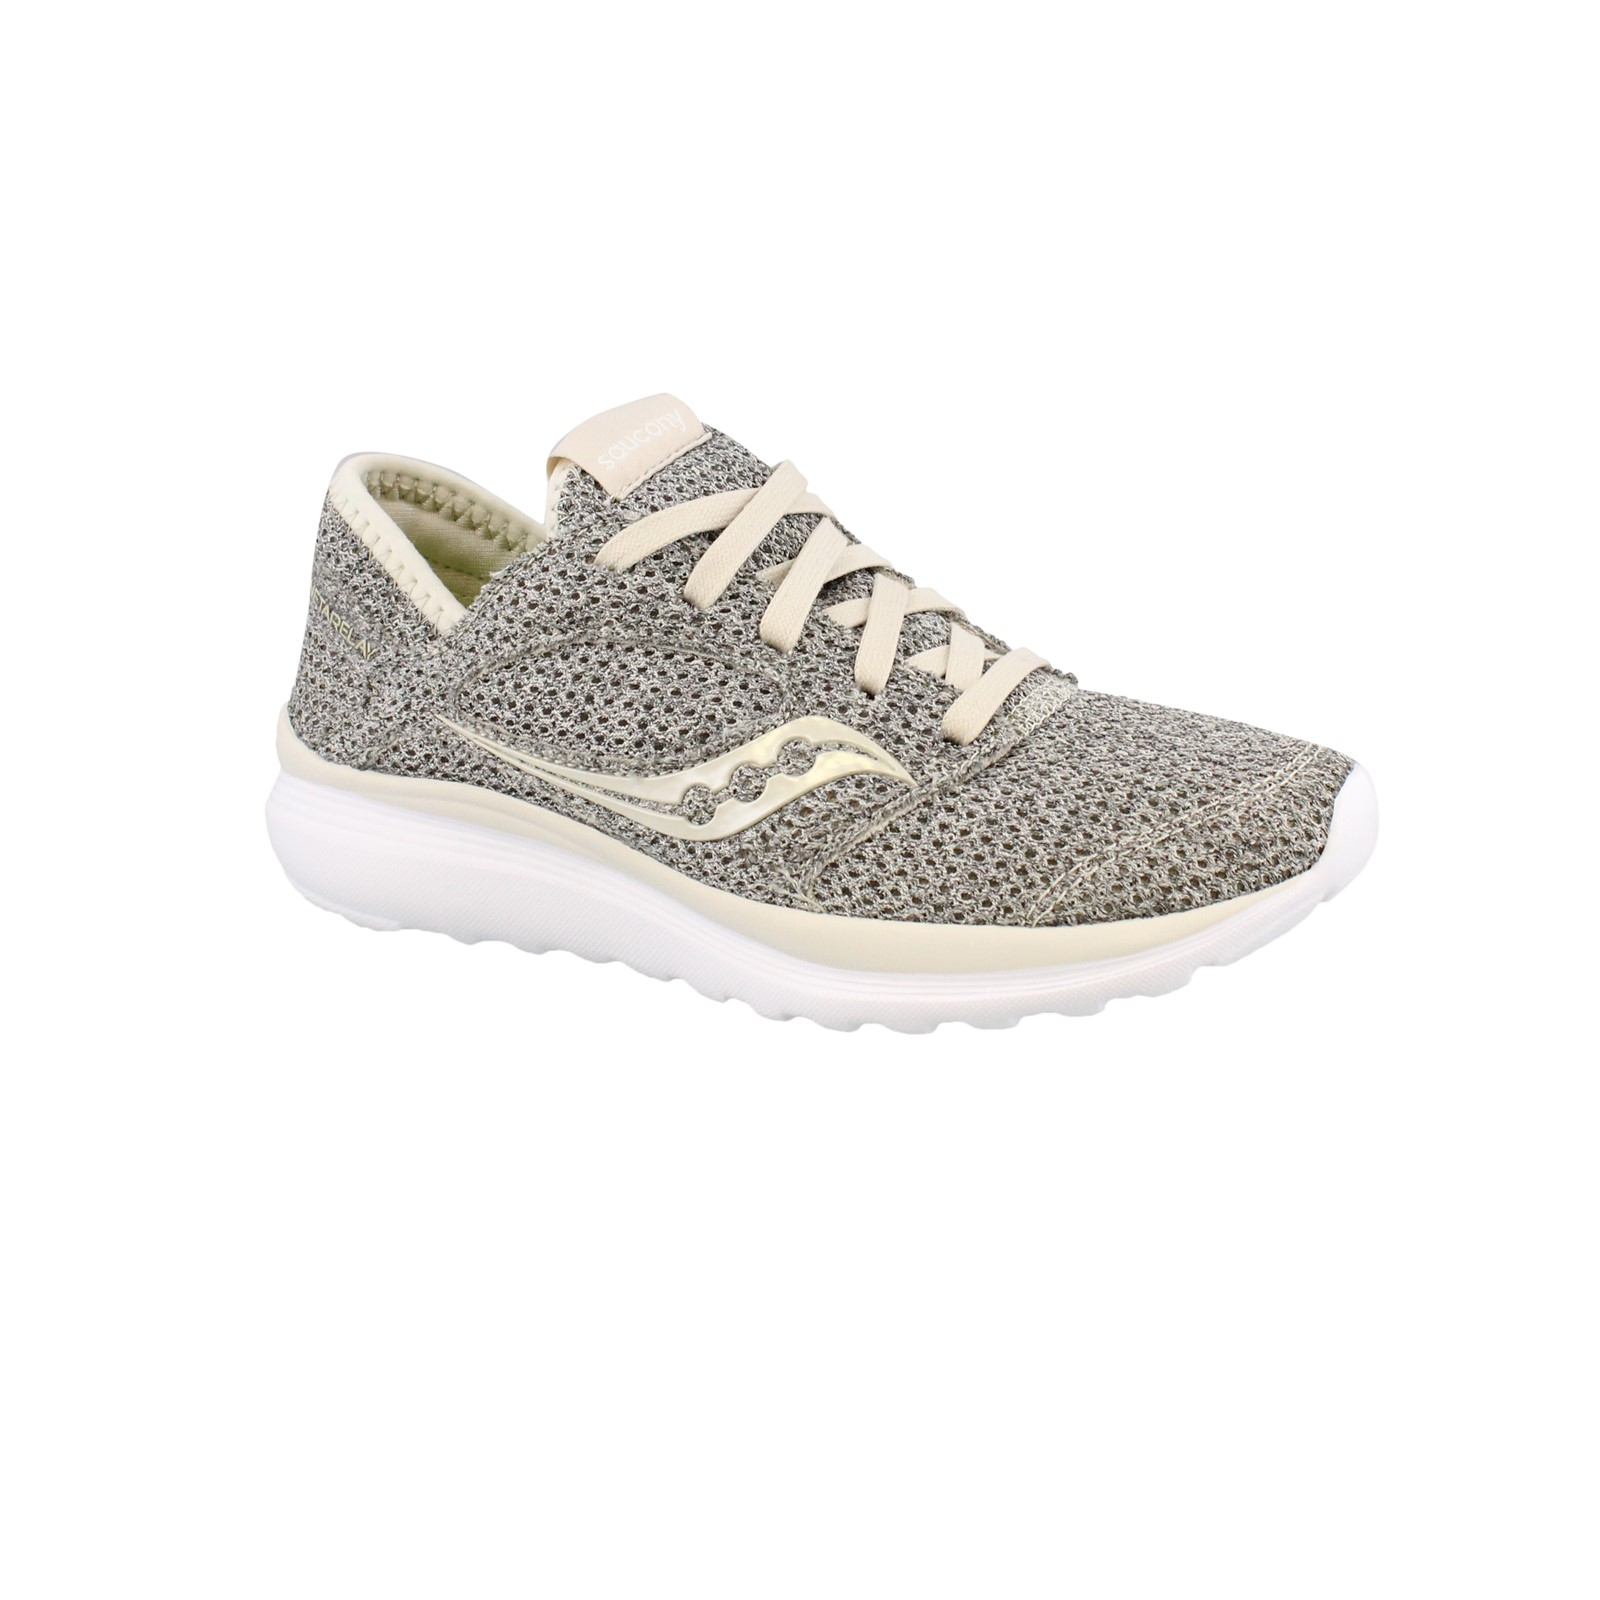 308bb81e209a Next. add to favorites. Women s SAUCONY